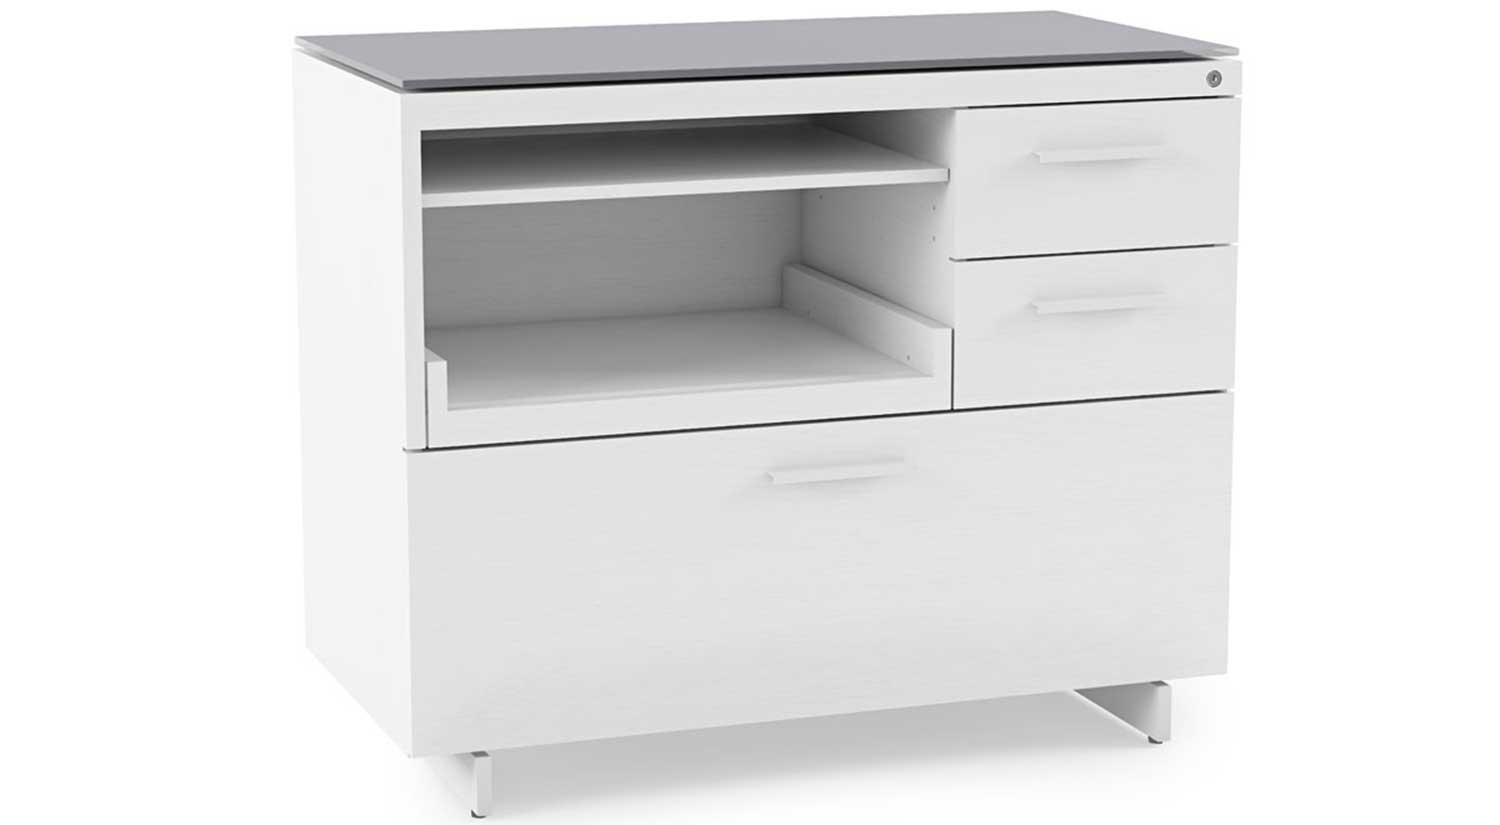 Circle Furniture - Centro Multi Function Cabinet | Office ...